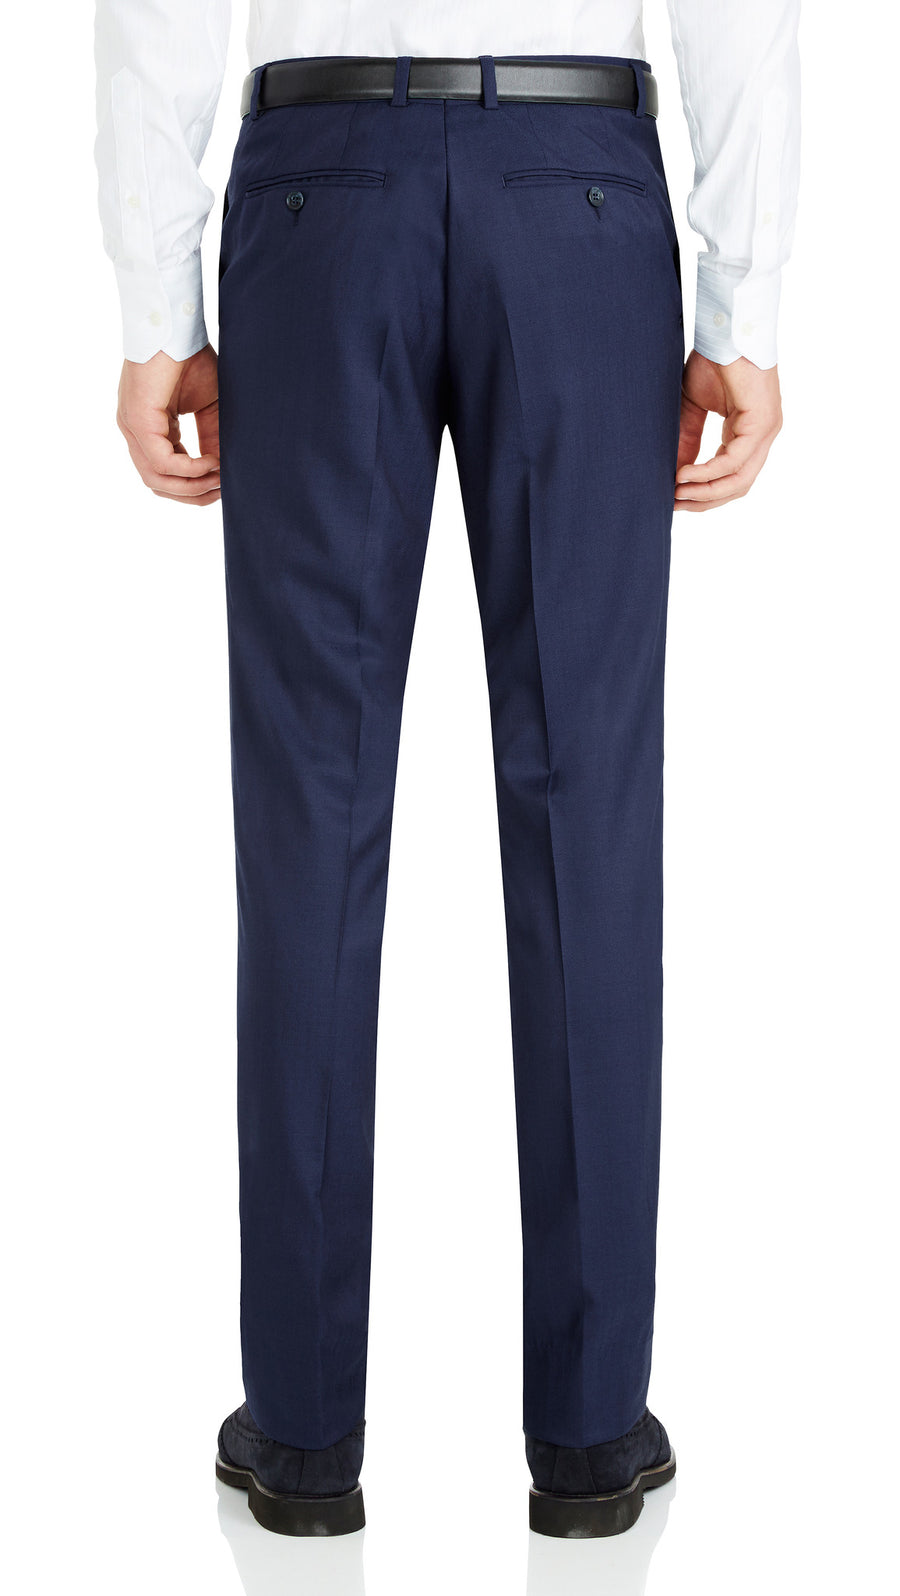 Nicholby & Harvard Dress Trousers in Blue - Ron Bennett Menswear  - 1